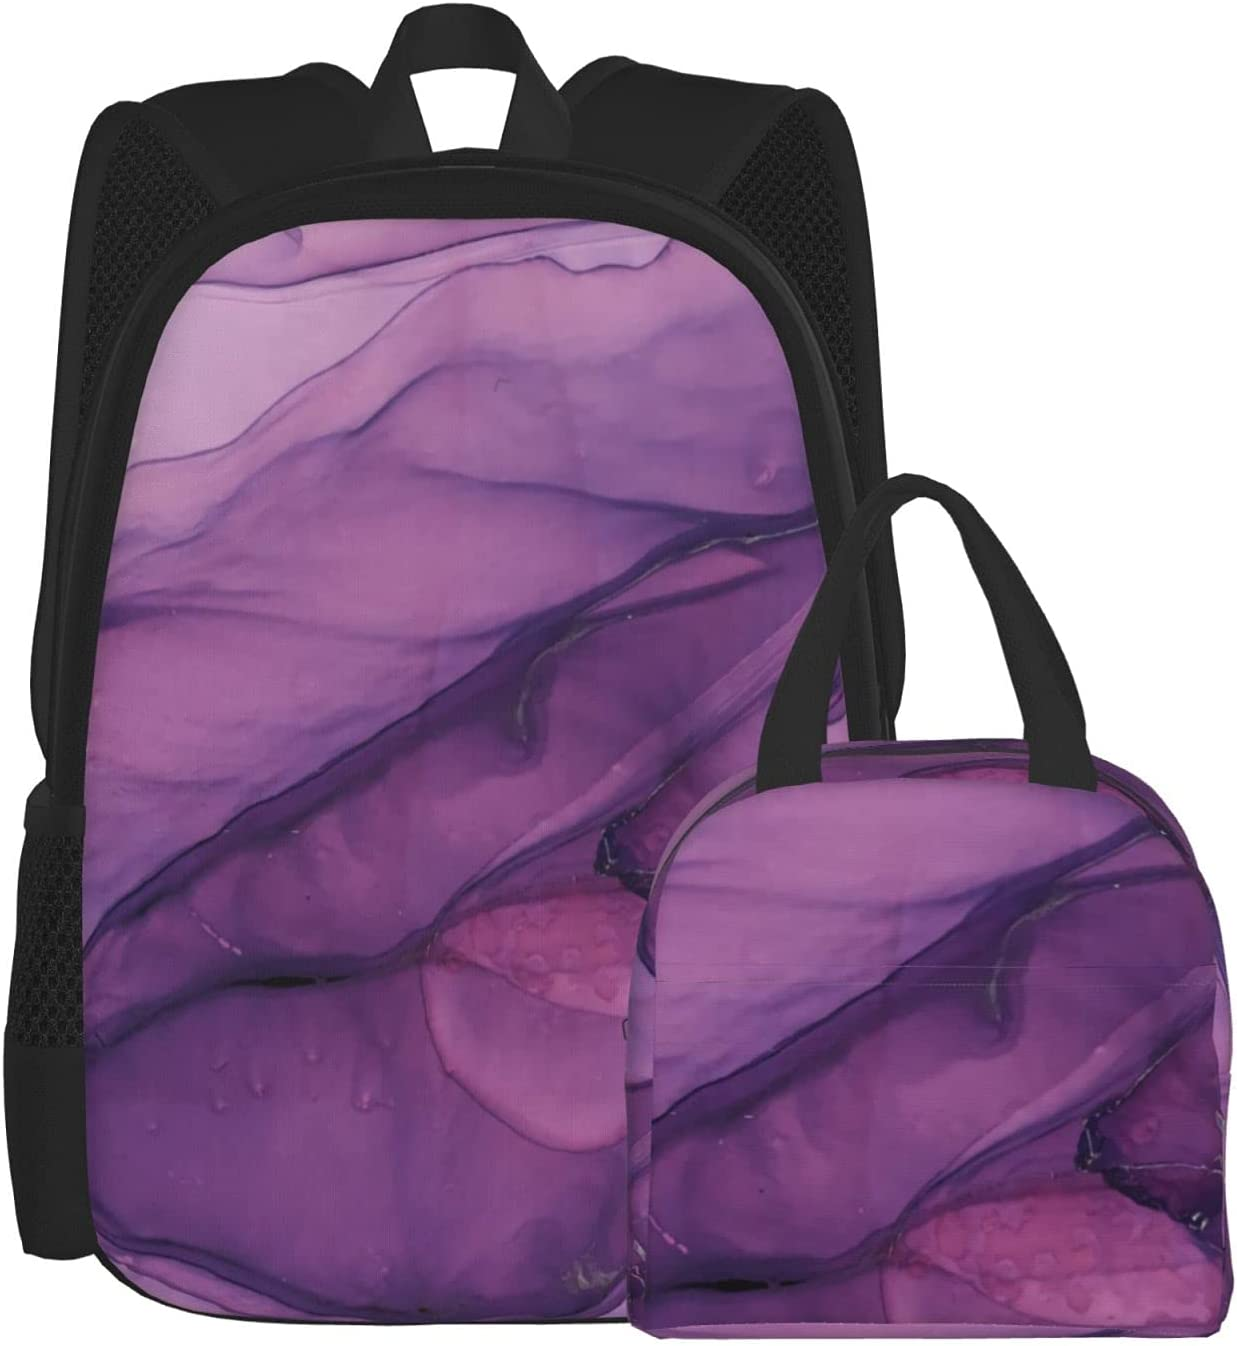 Backpack Lunch Outstanding Bag Sets Popular product for Boys Girls Purple Abstract Backpac